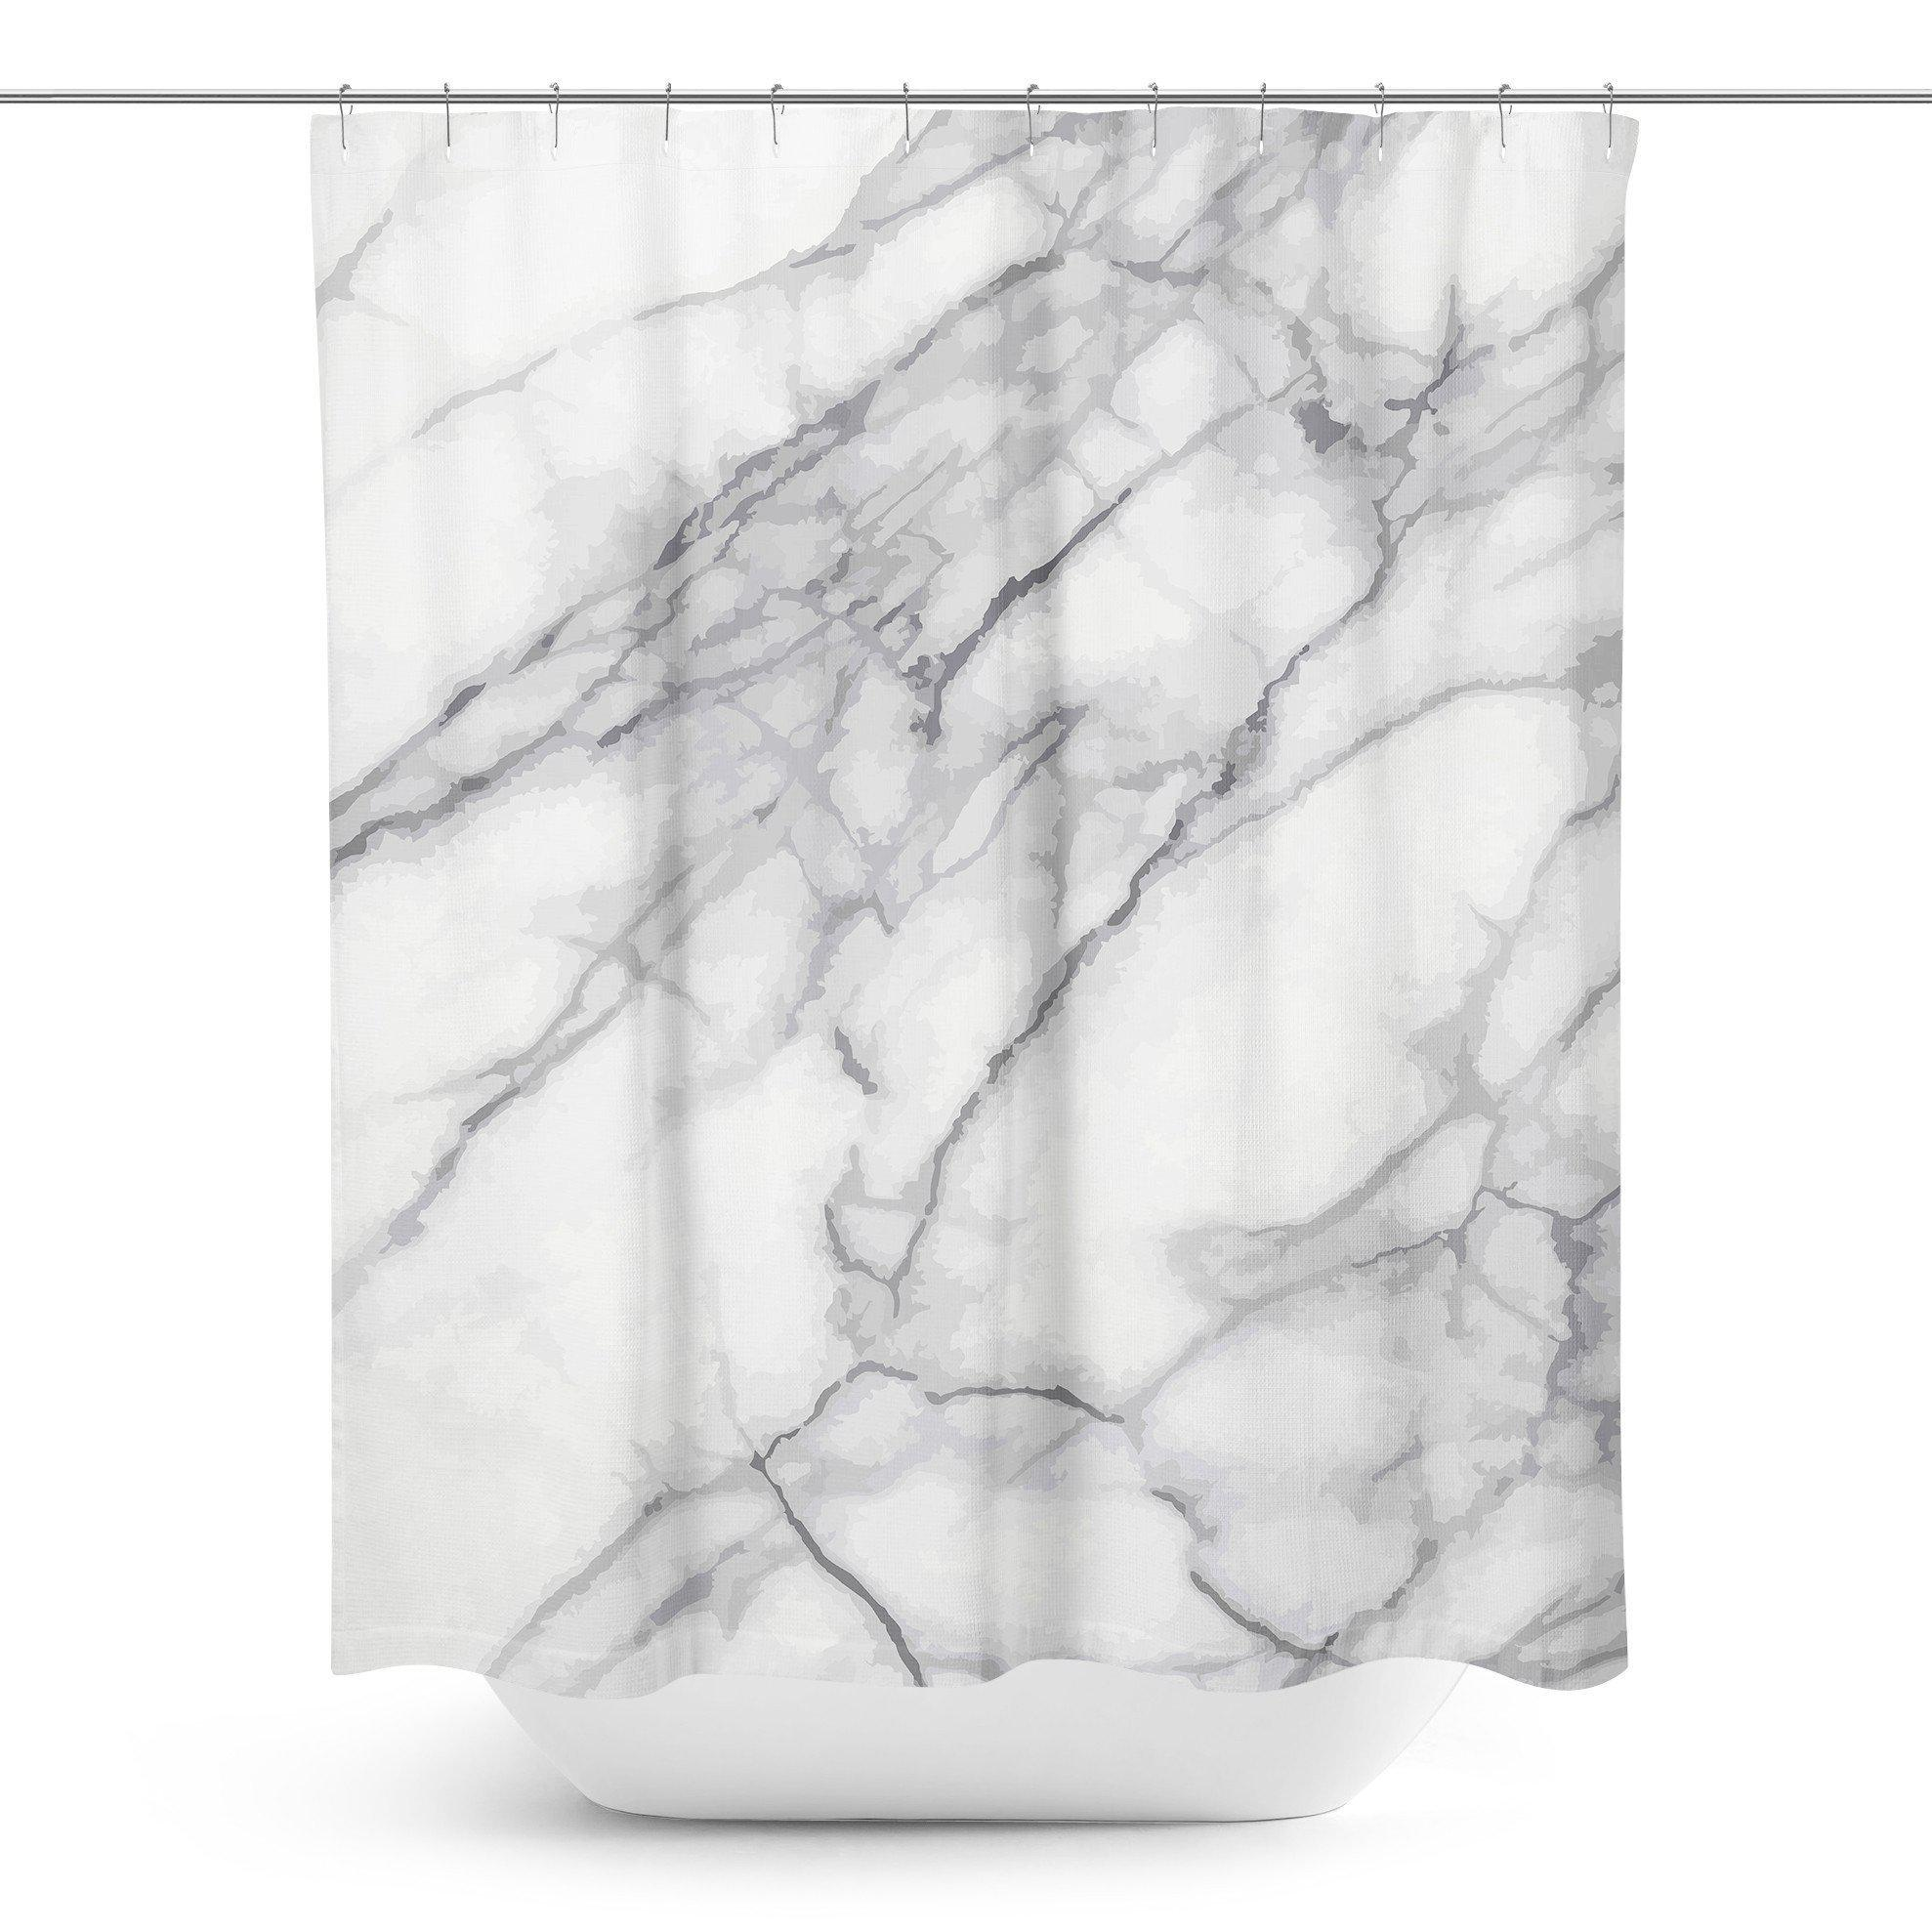 Marble Shower Curtain - Shower Curtains - W.FRANCIS